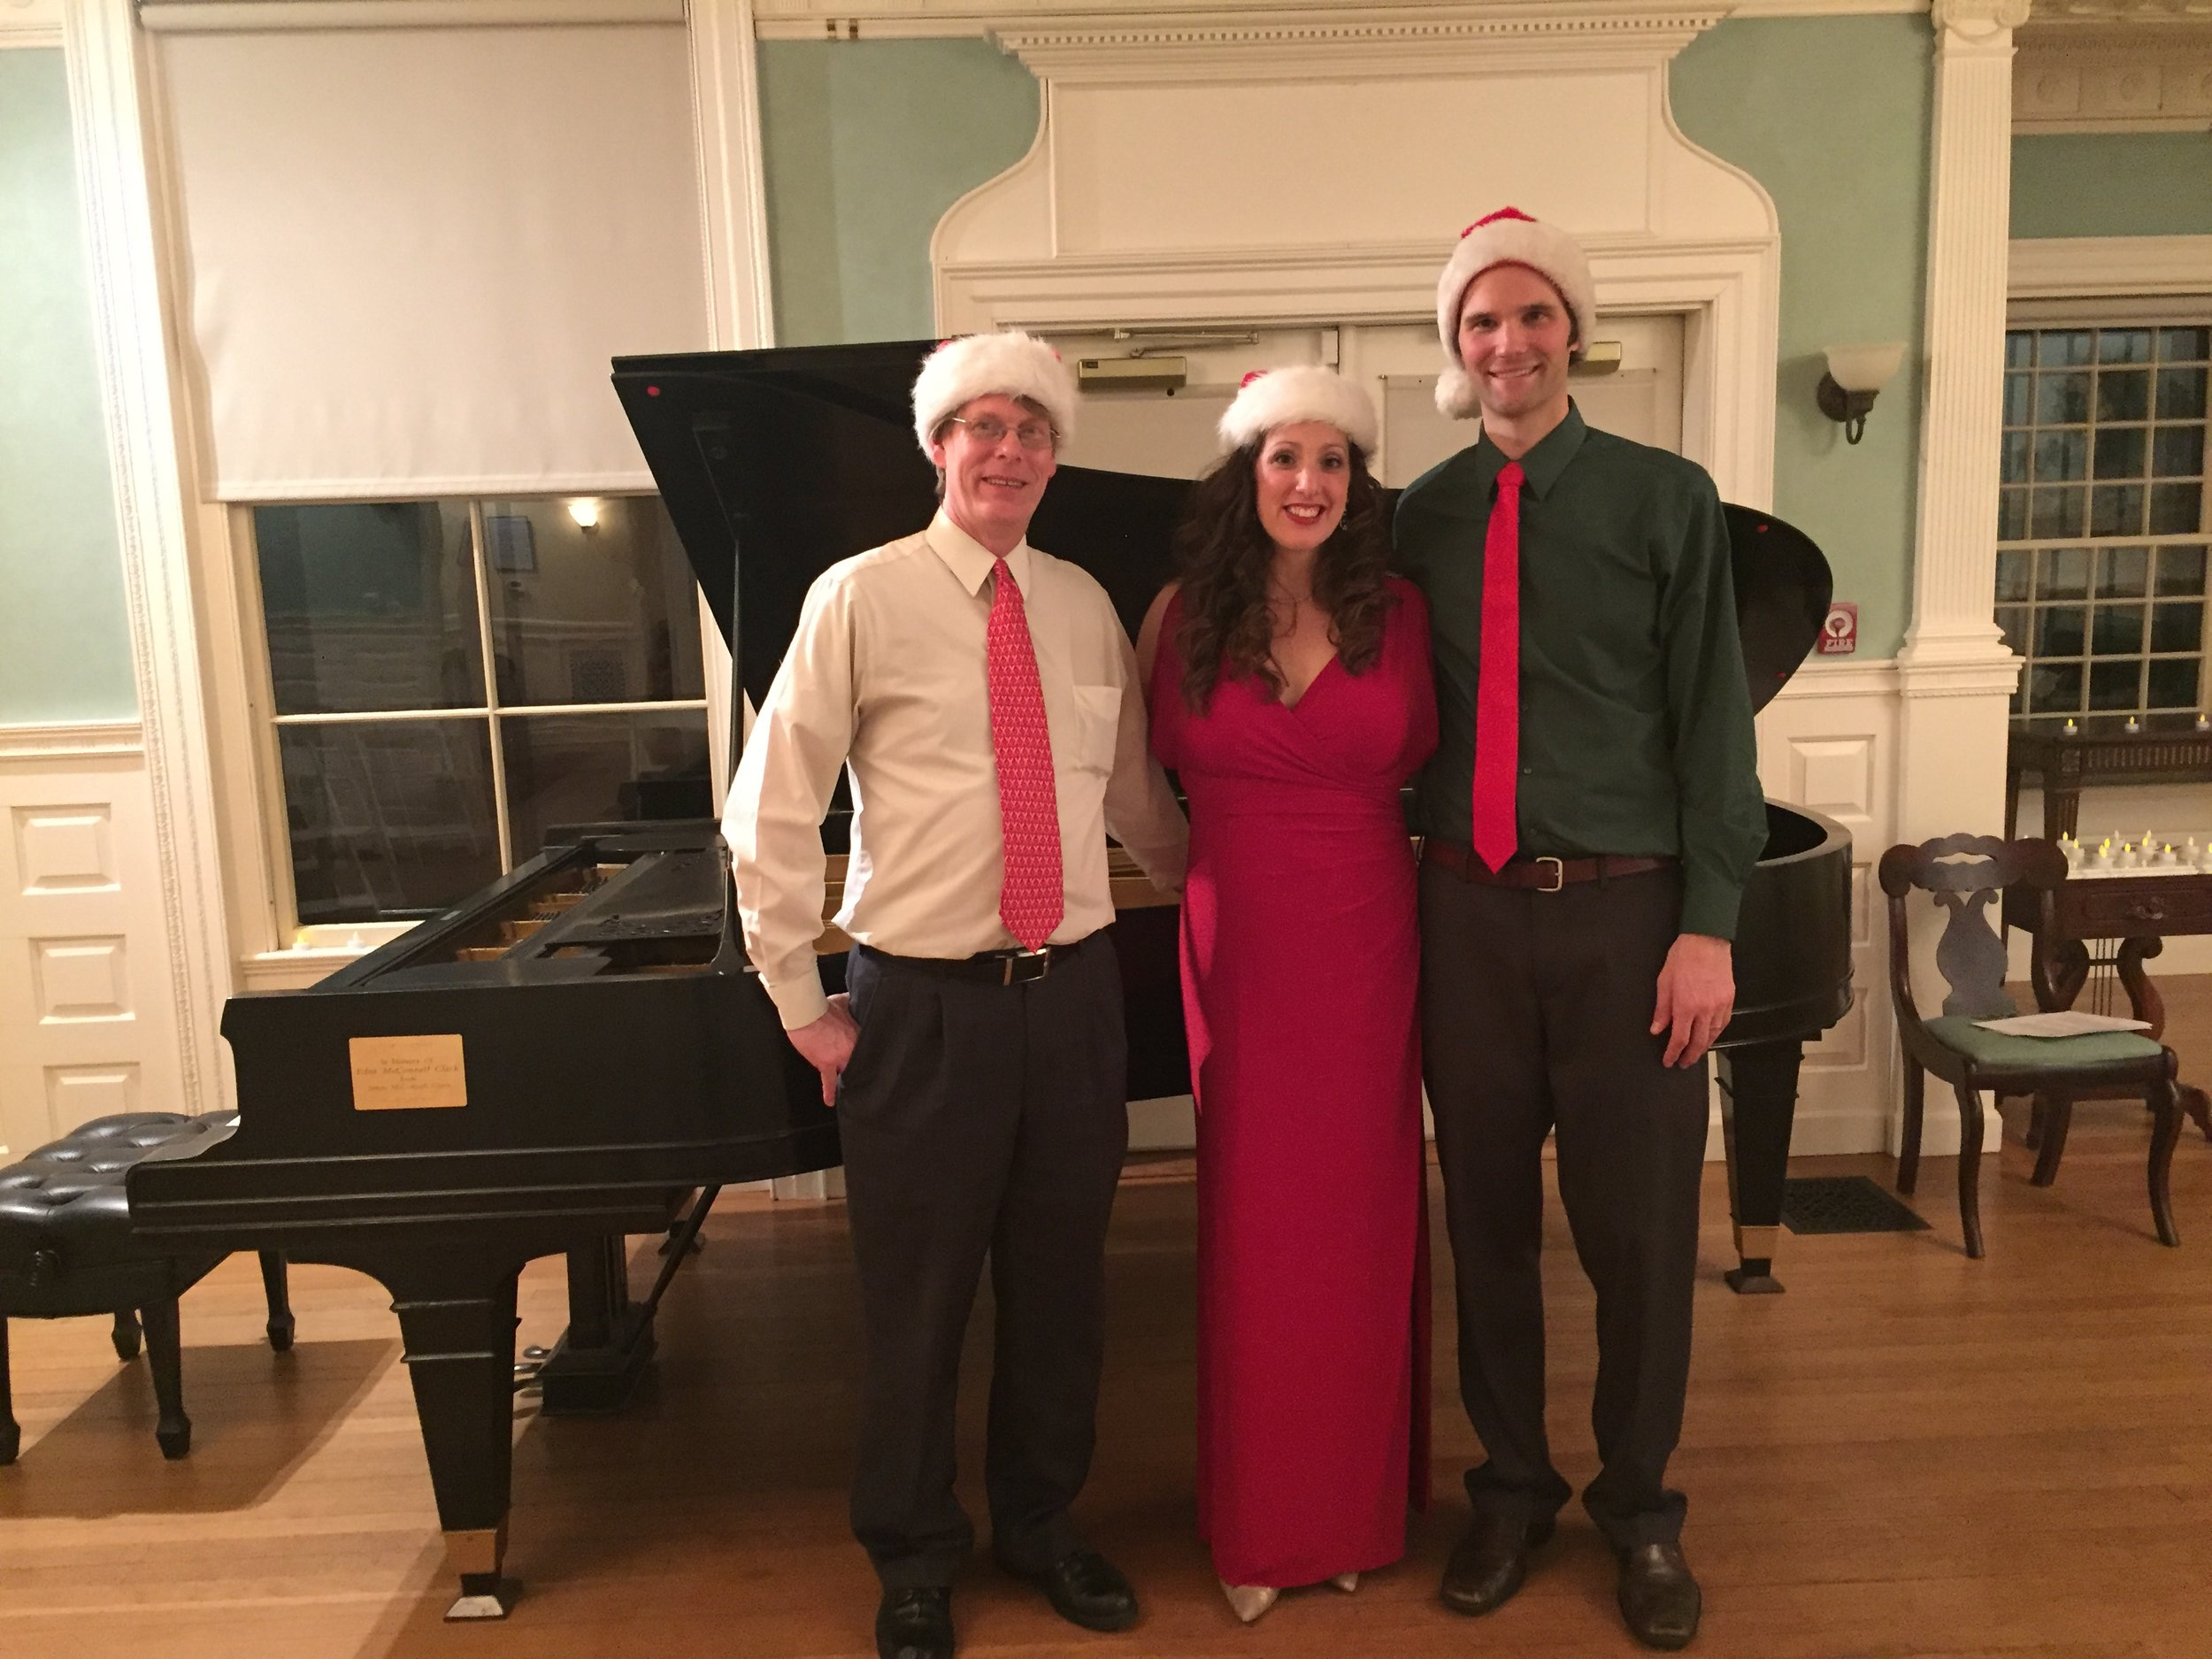 Christmas recital with Deborah Selig and Tim Steele